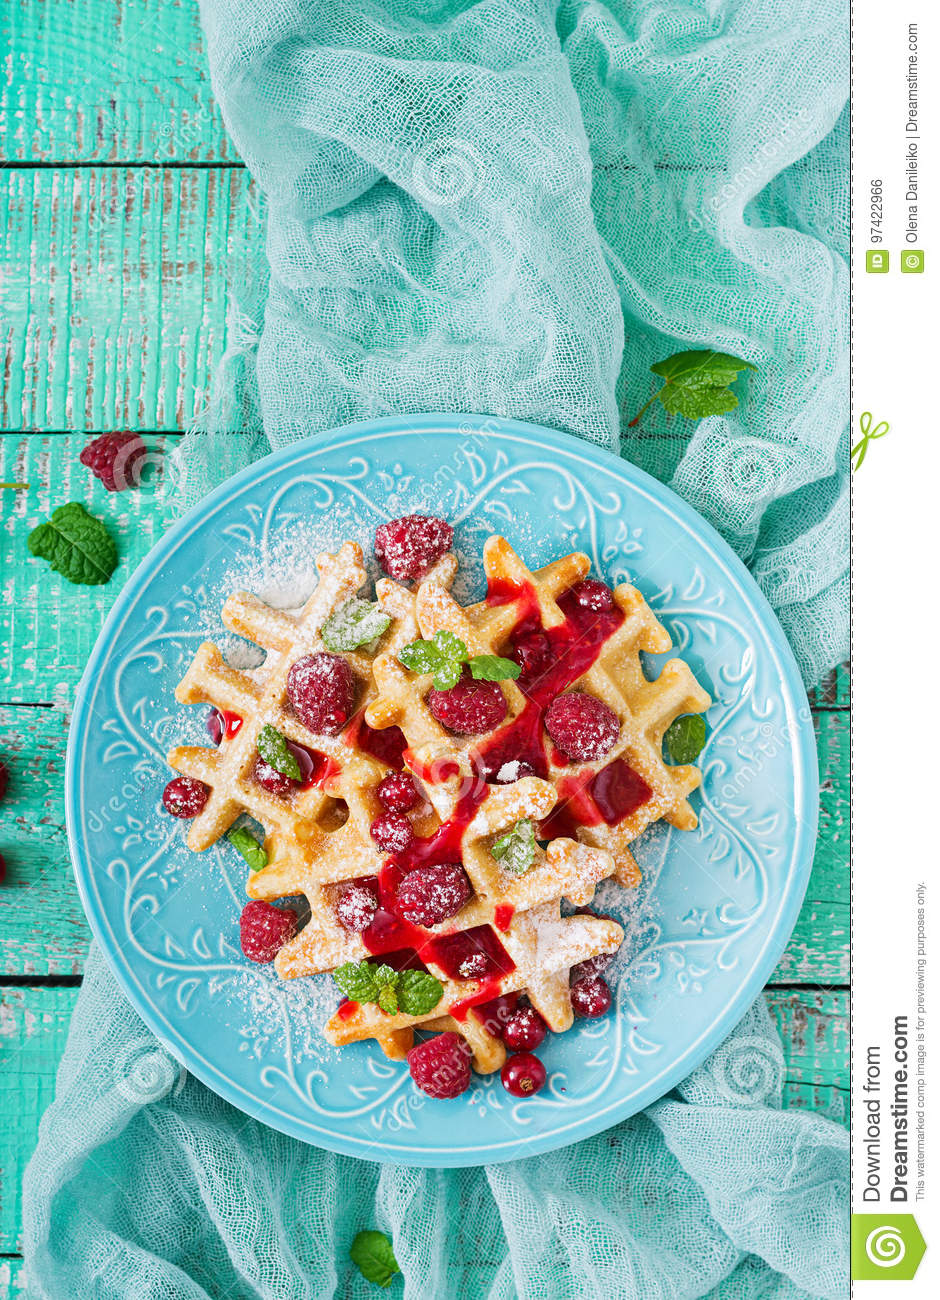 Belgium waffles with raspberries and syrup